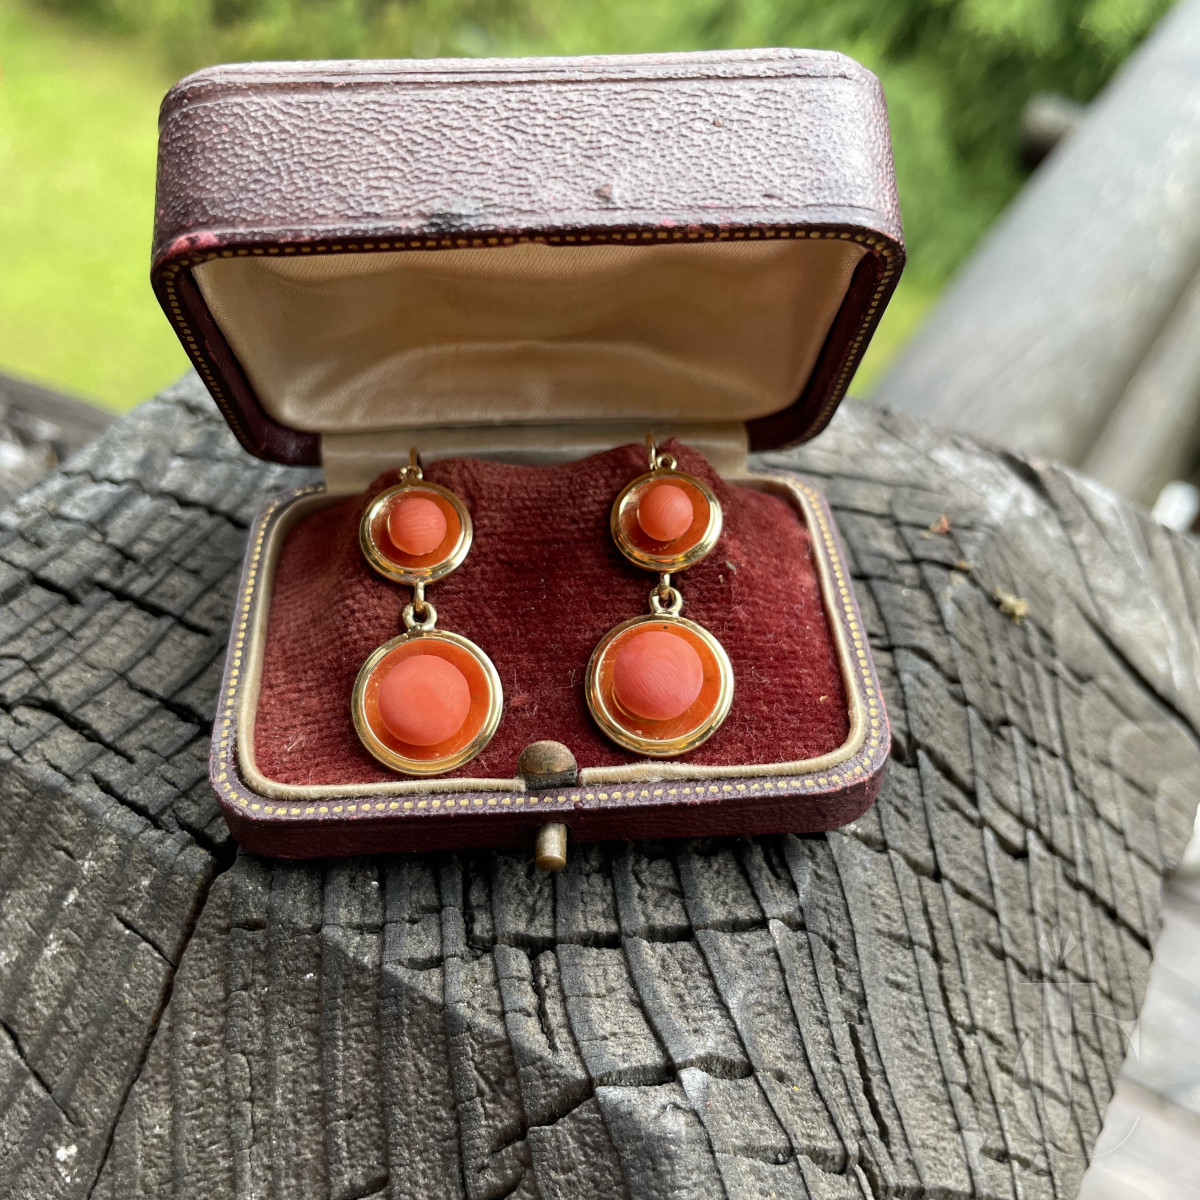 Antique French 18kt coral earrings in box